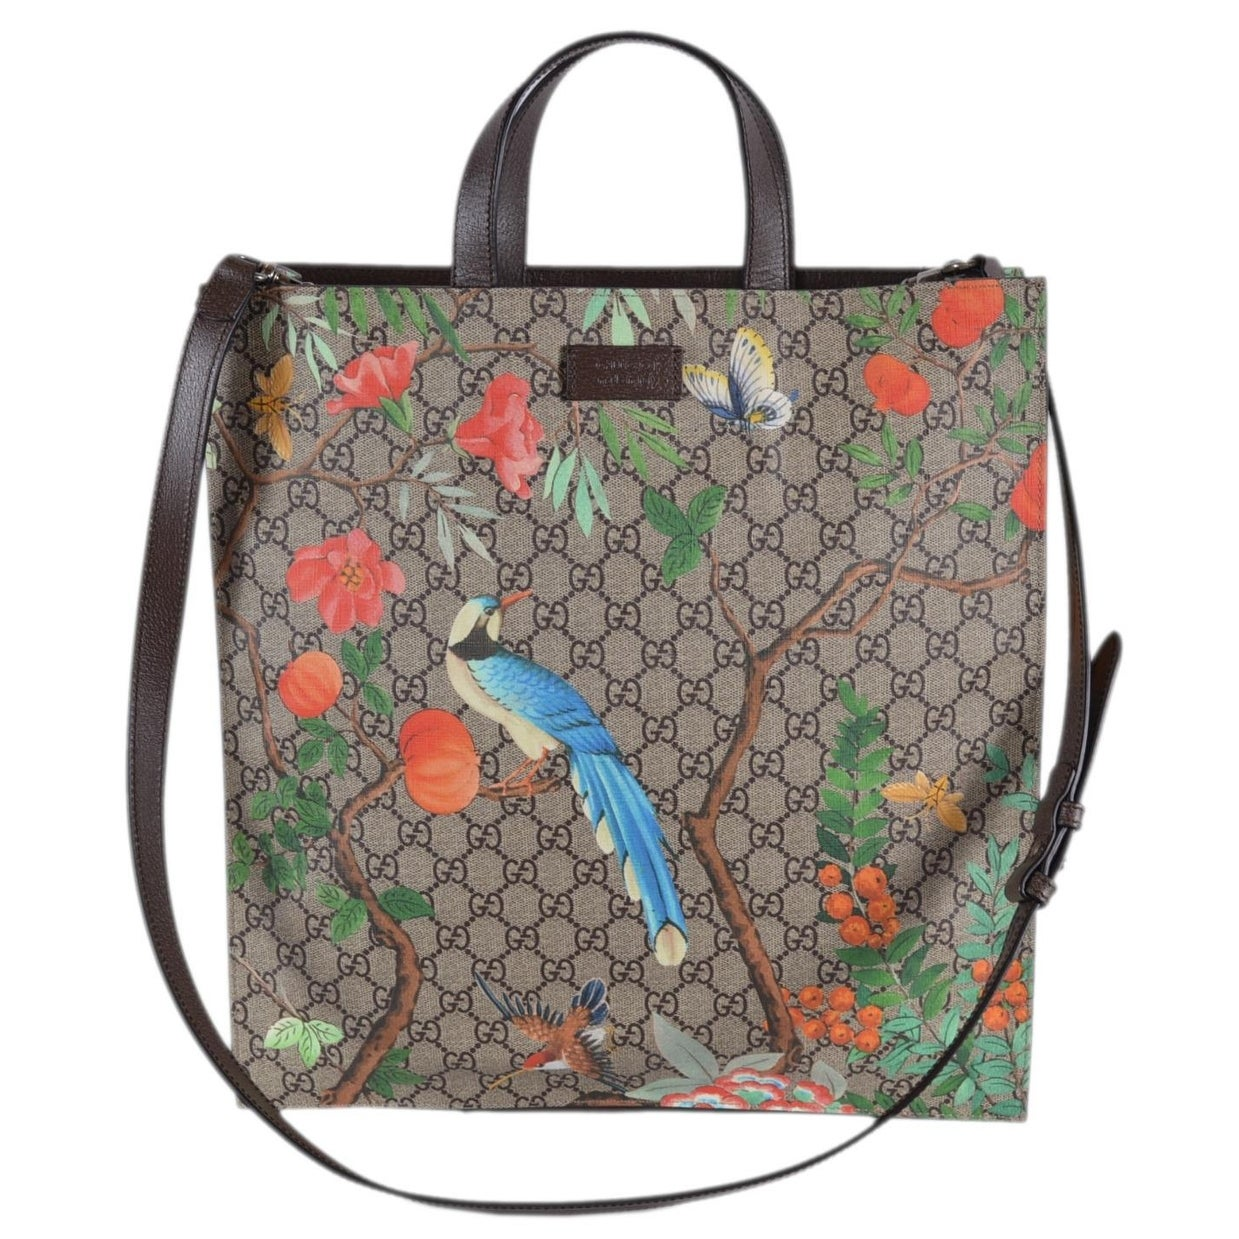 2f6323badaa7 Shop Gucci Women's 450950 GG Supreme Blooms Birds Floral Crossbody Purse  Tote - Beige/Brown - Free Shipping Today - Overstock - 27545157